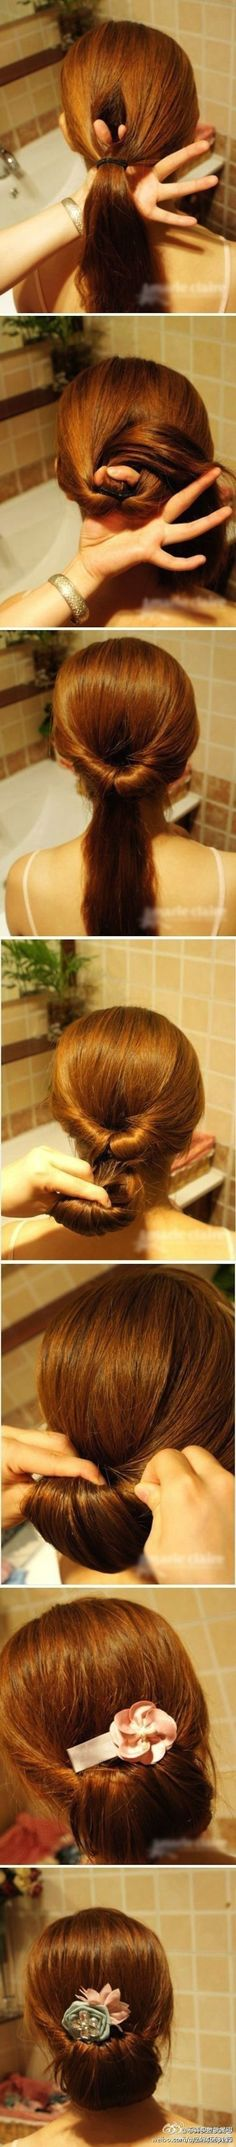 Easy updo braid lazy hairstyle Via asianweddingideas.co.uk